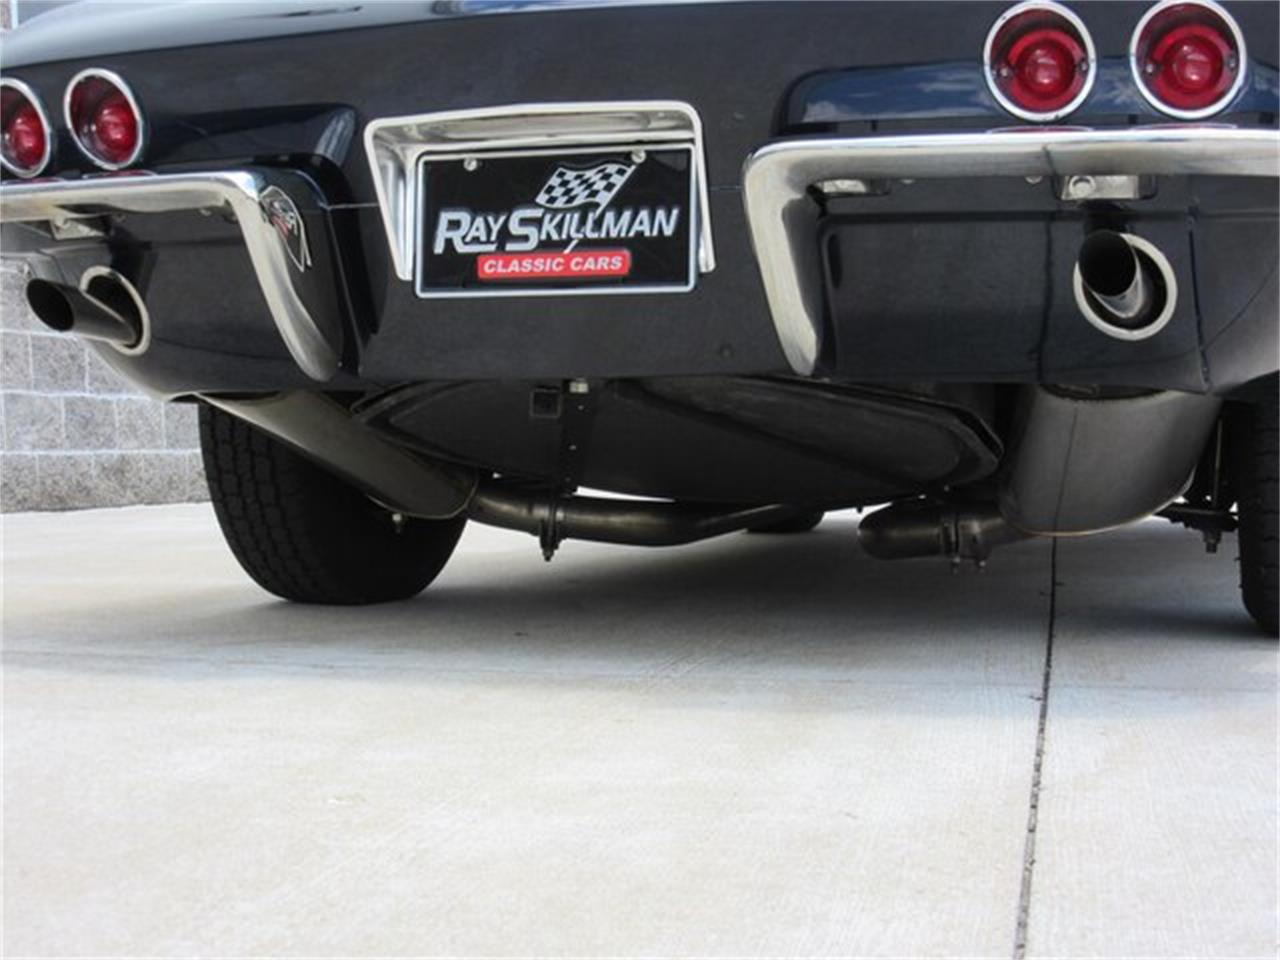 Large Picture of '63 Corvette Offered by Ray Skillman Classic Cars - QKZR